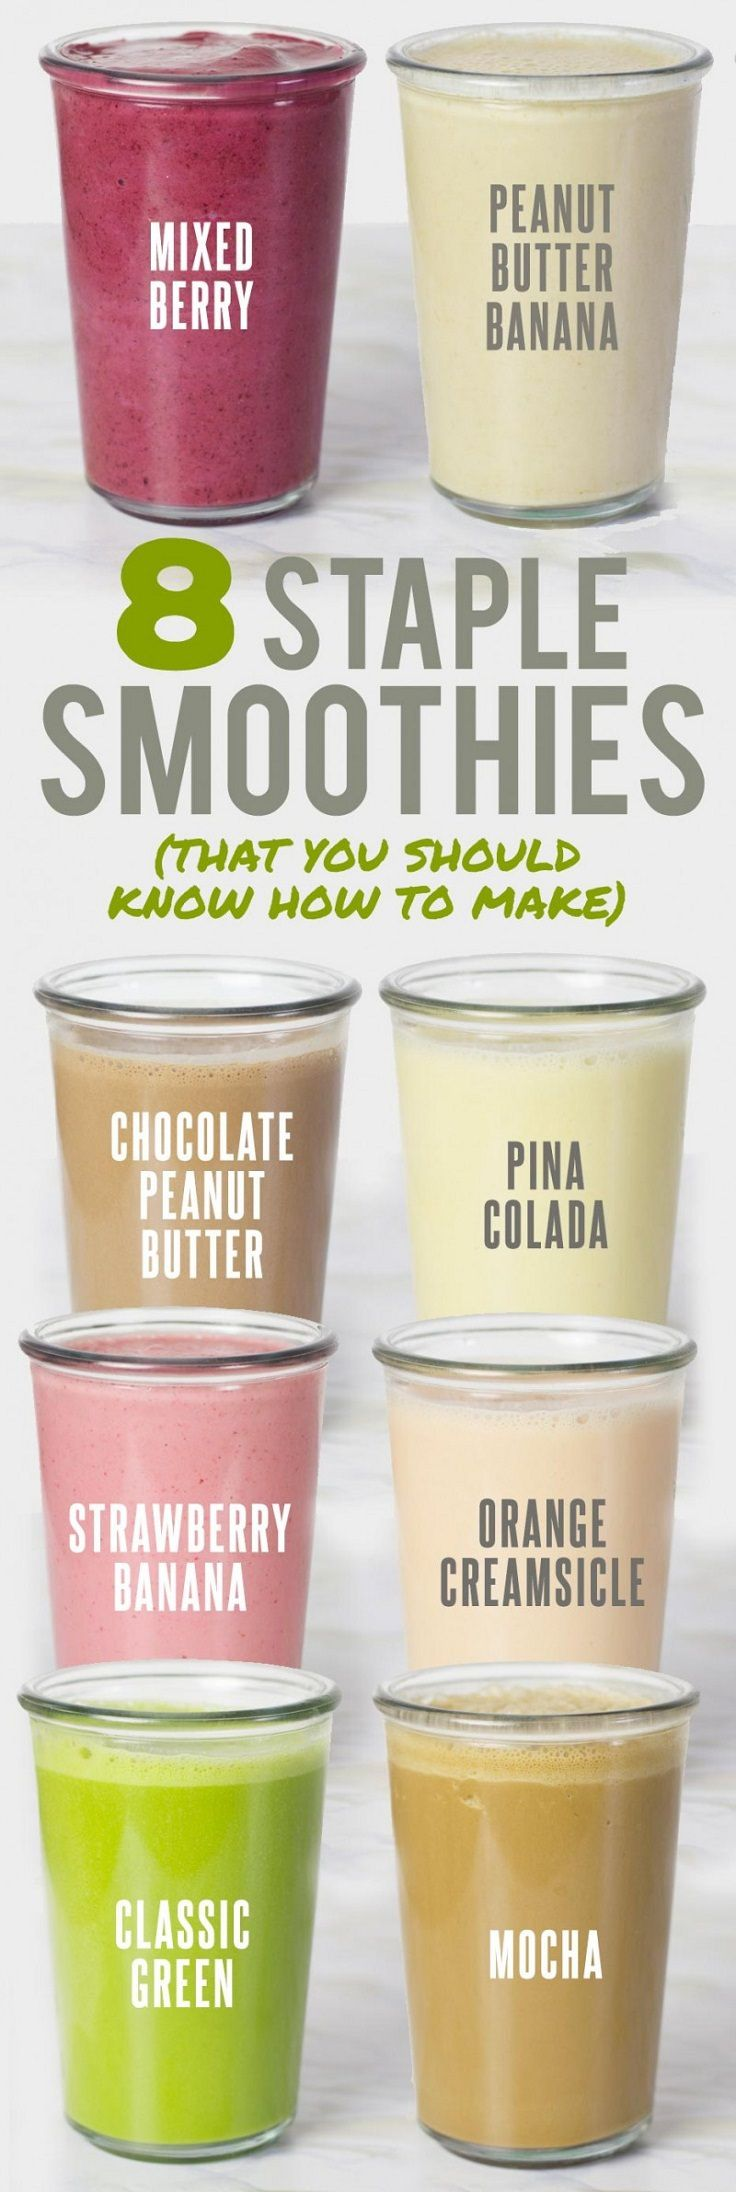 Learn some great tips and tricks to make smoothies, plus some 8 best smoothie recipes. Check out!